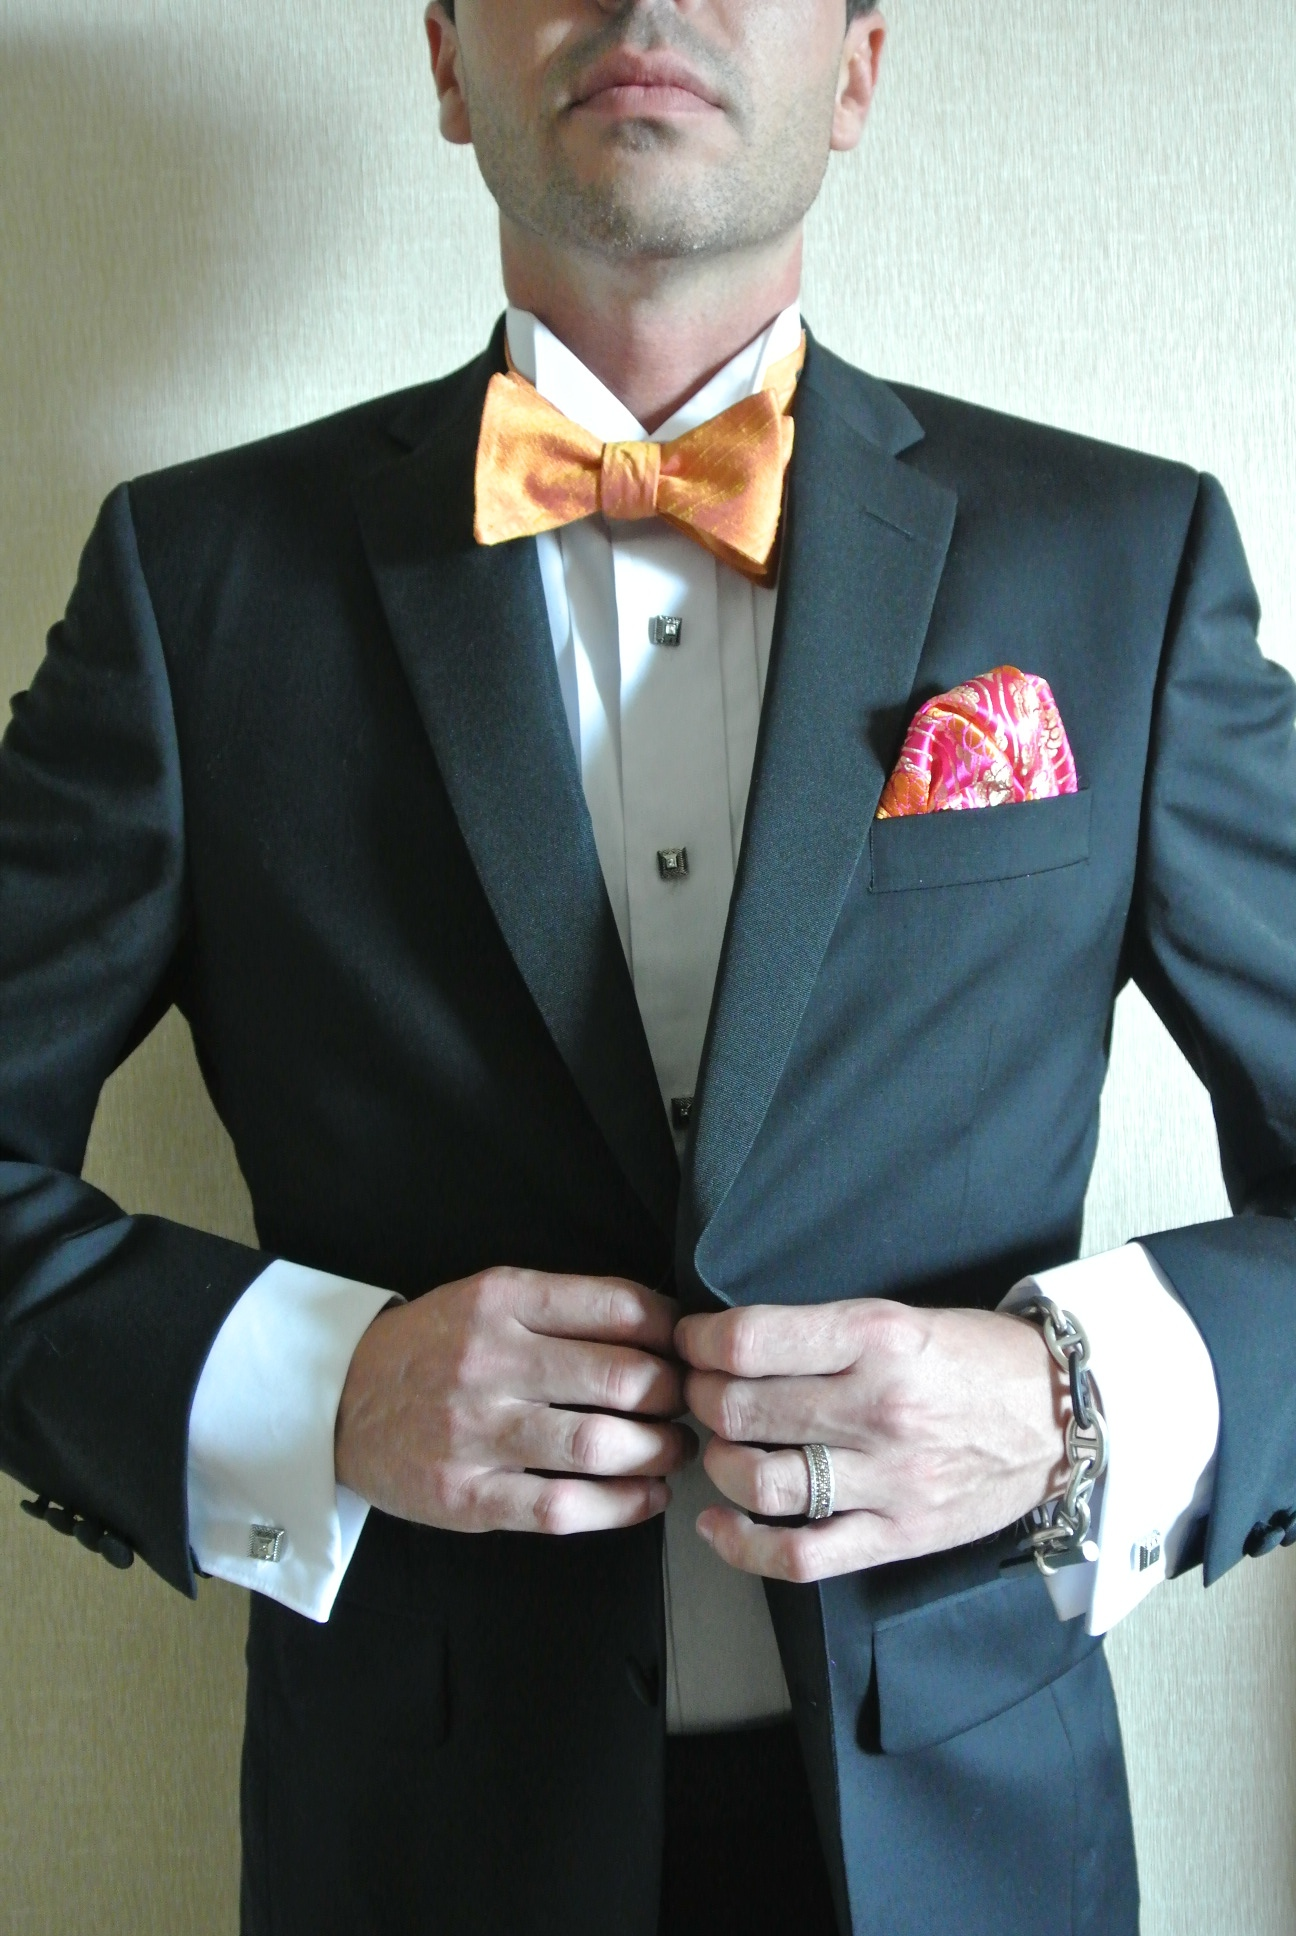 To marry his long time love, Marek accessorized his Vera Wang Black Tux with custom made orange bowtie, a pink and tangerine pocket square, and both cufflinks and button covers. His chocolate diamond engagement ring was firmly on his finger.   Las Vegas Wedding Planner Andrea Eppolito    Photo by Andrea Eppolito.